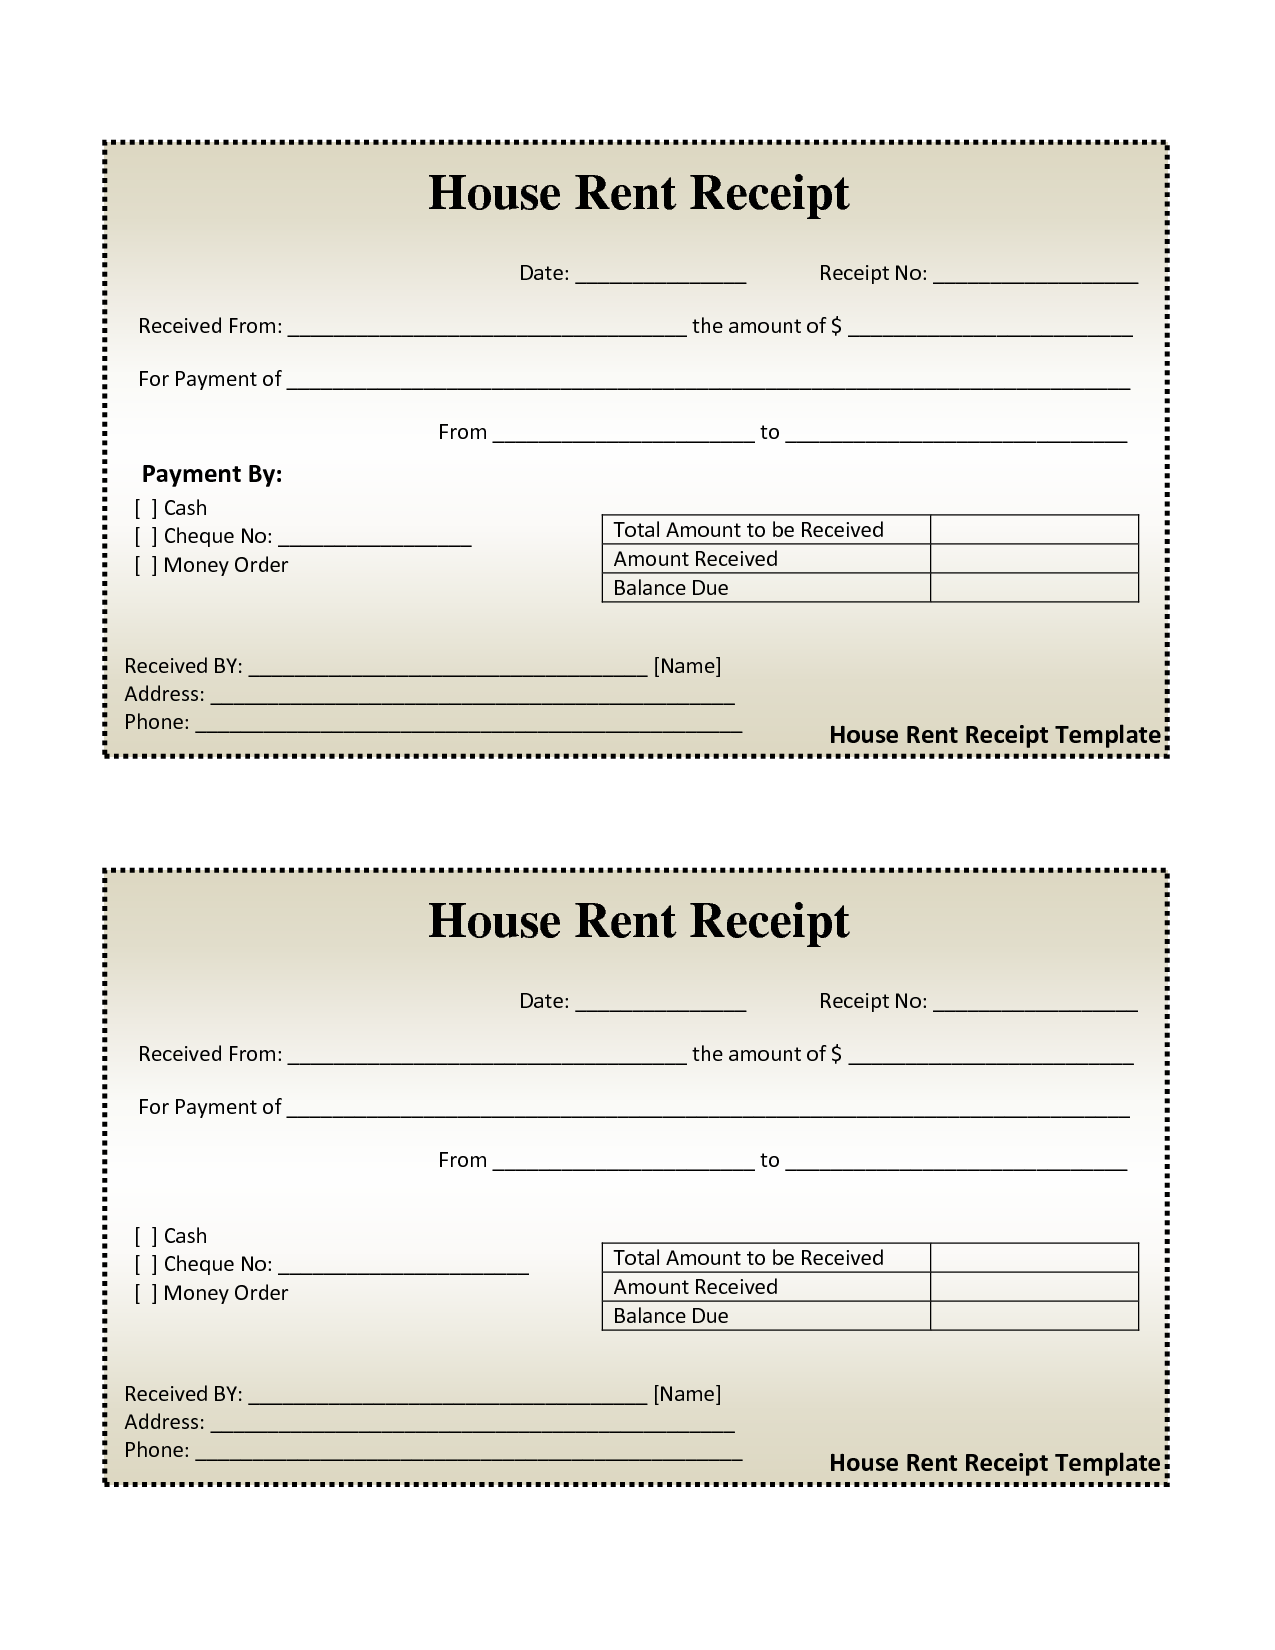 Free Rent Receipts Beauteous Free House Rental Invoice  House Rent Receipt Template  Doc  Rent .